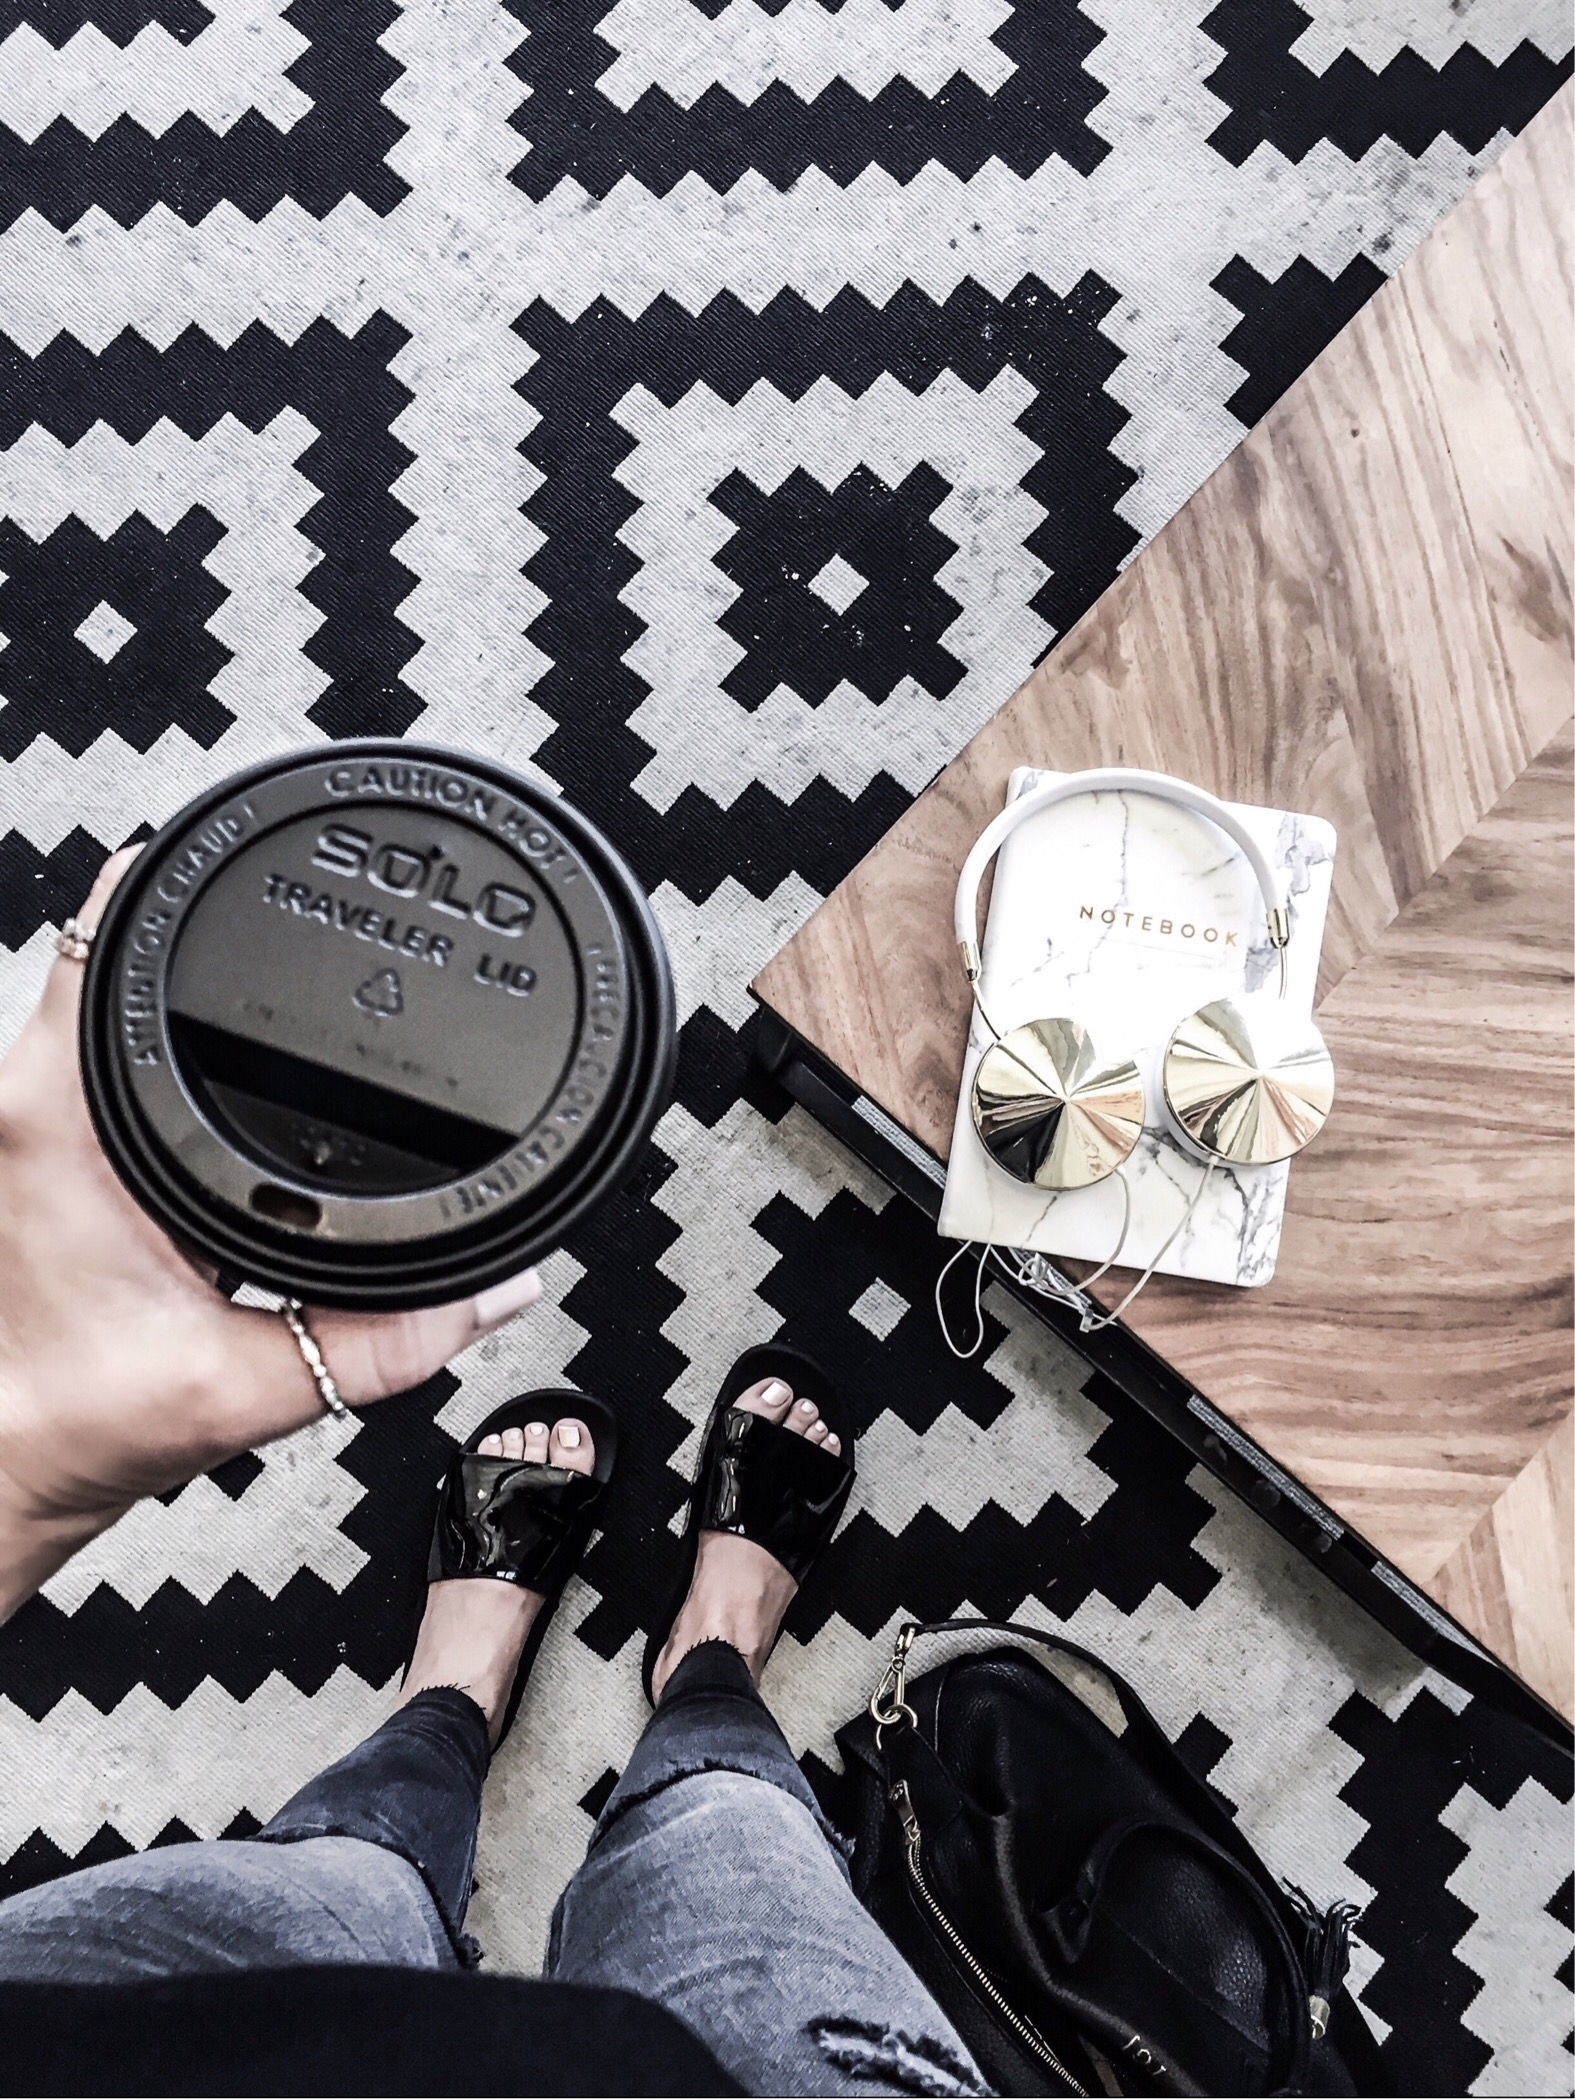 Houston fashion and lifestyle blogger Tiffany Jais | Black slides, flatlay, fashion flatlays, frends headphones | coffee shop vibes